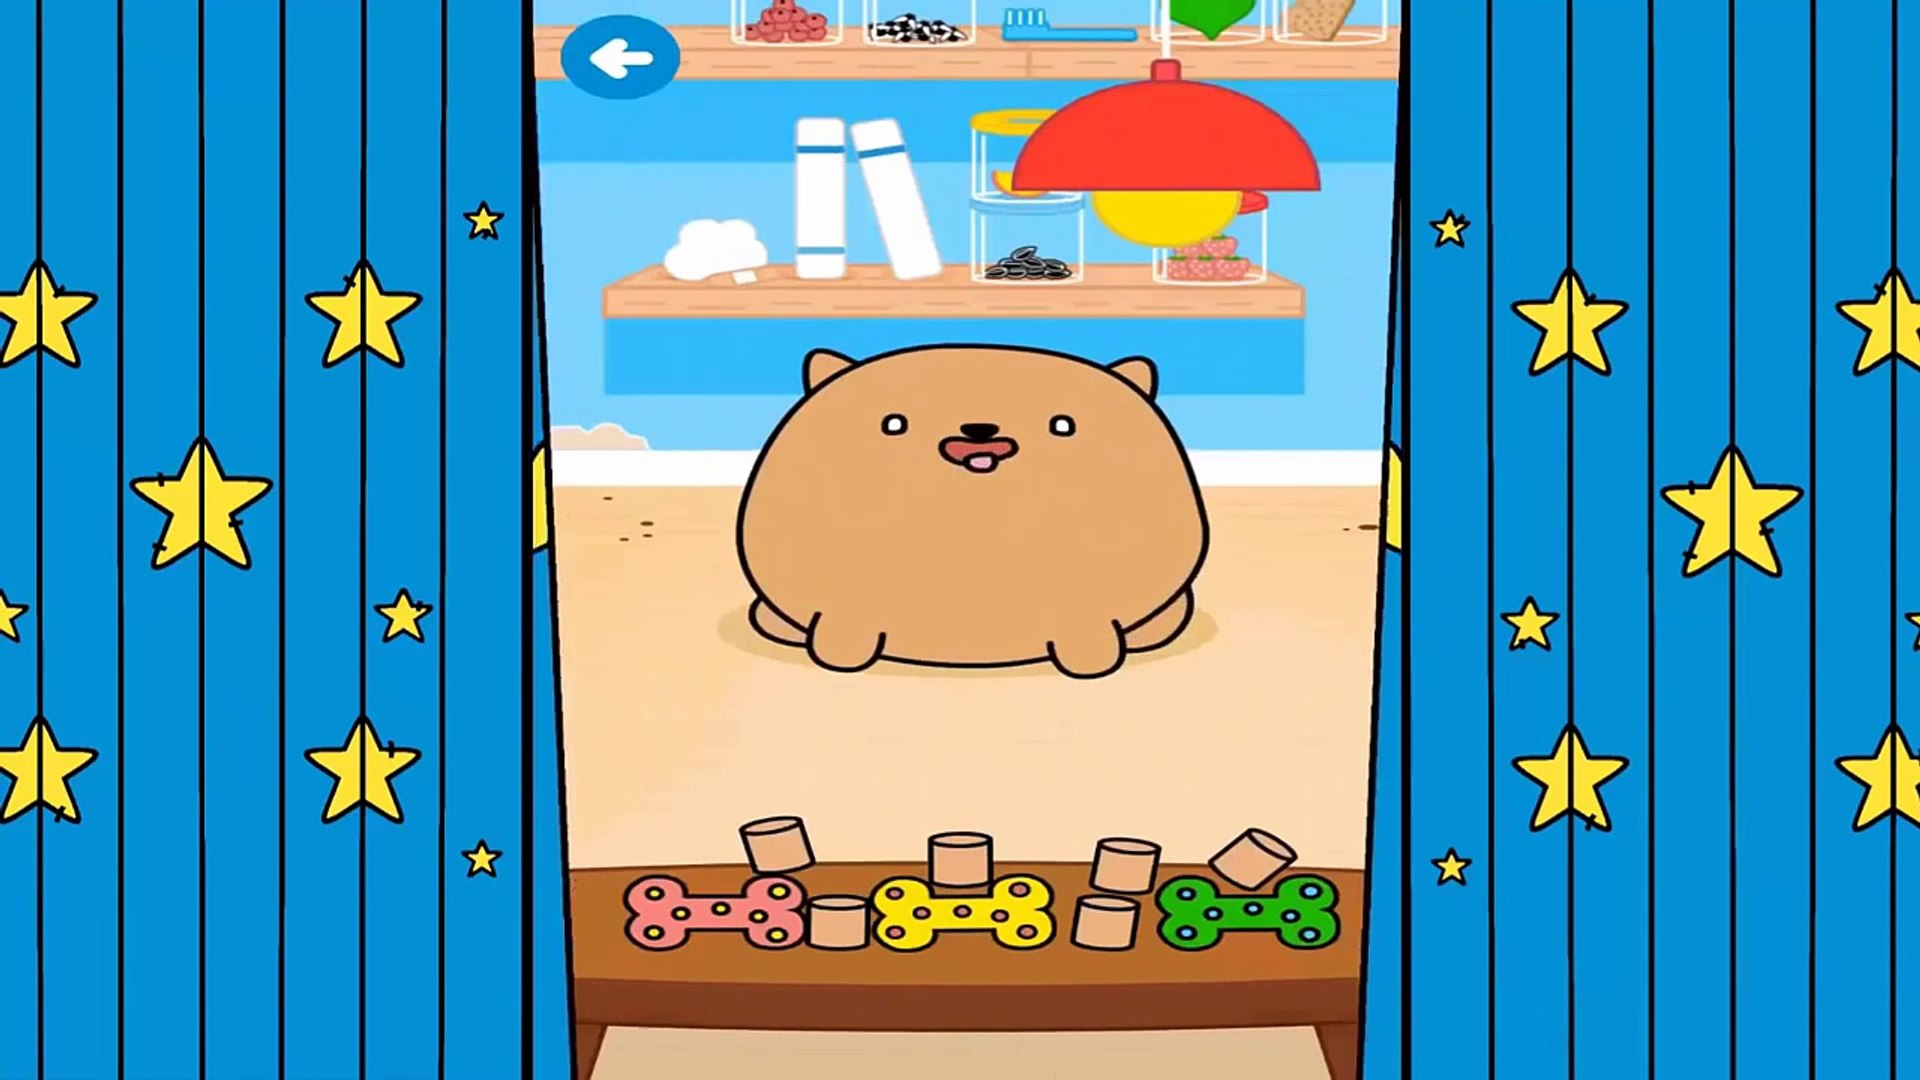 Toca Pet Doctor - Baby Fun Care and Help Cute Little Pets, Animasl in Toca Boca House